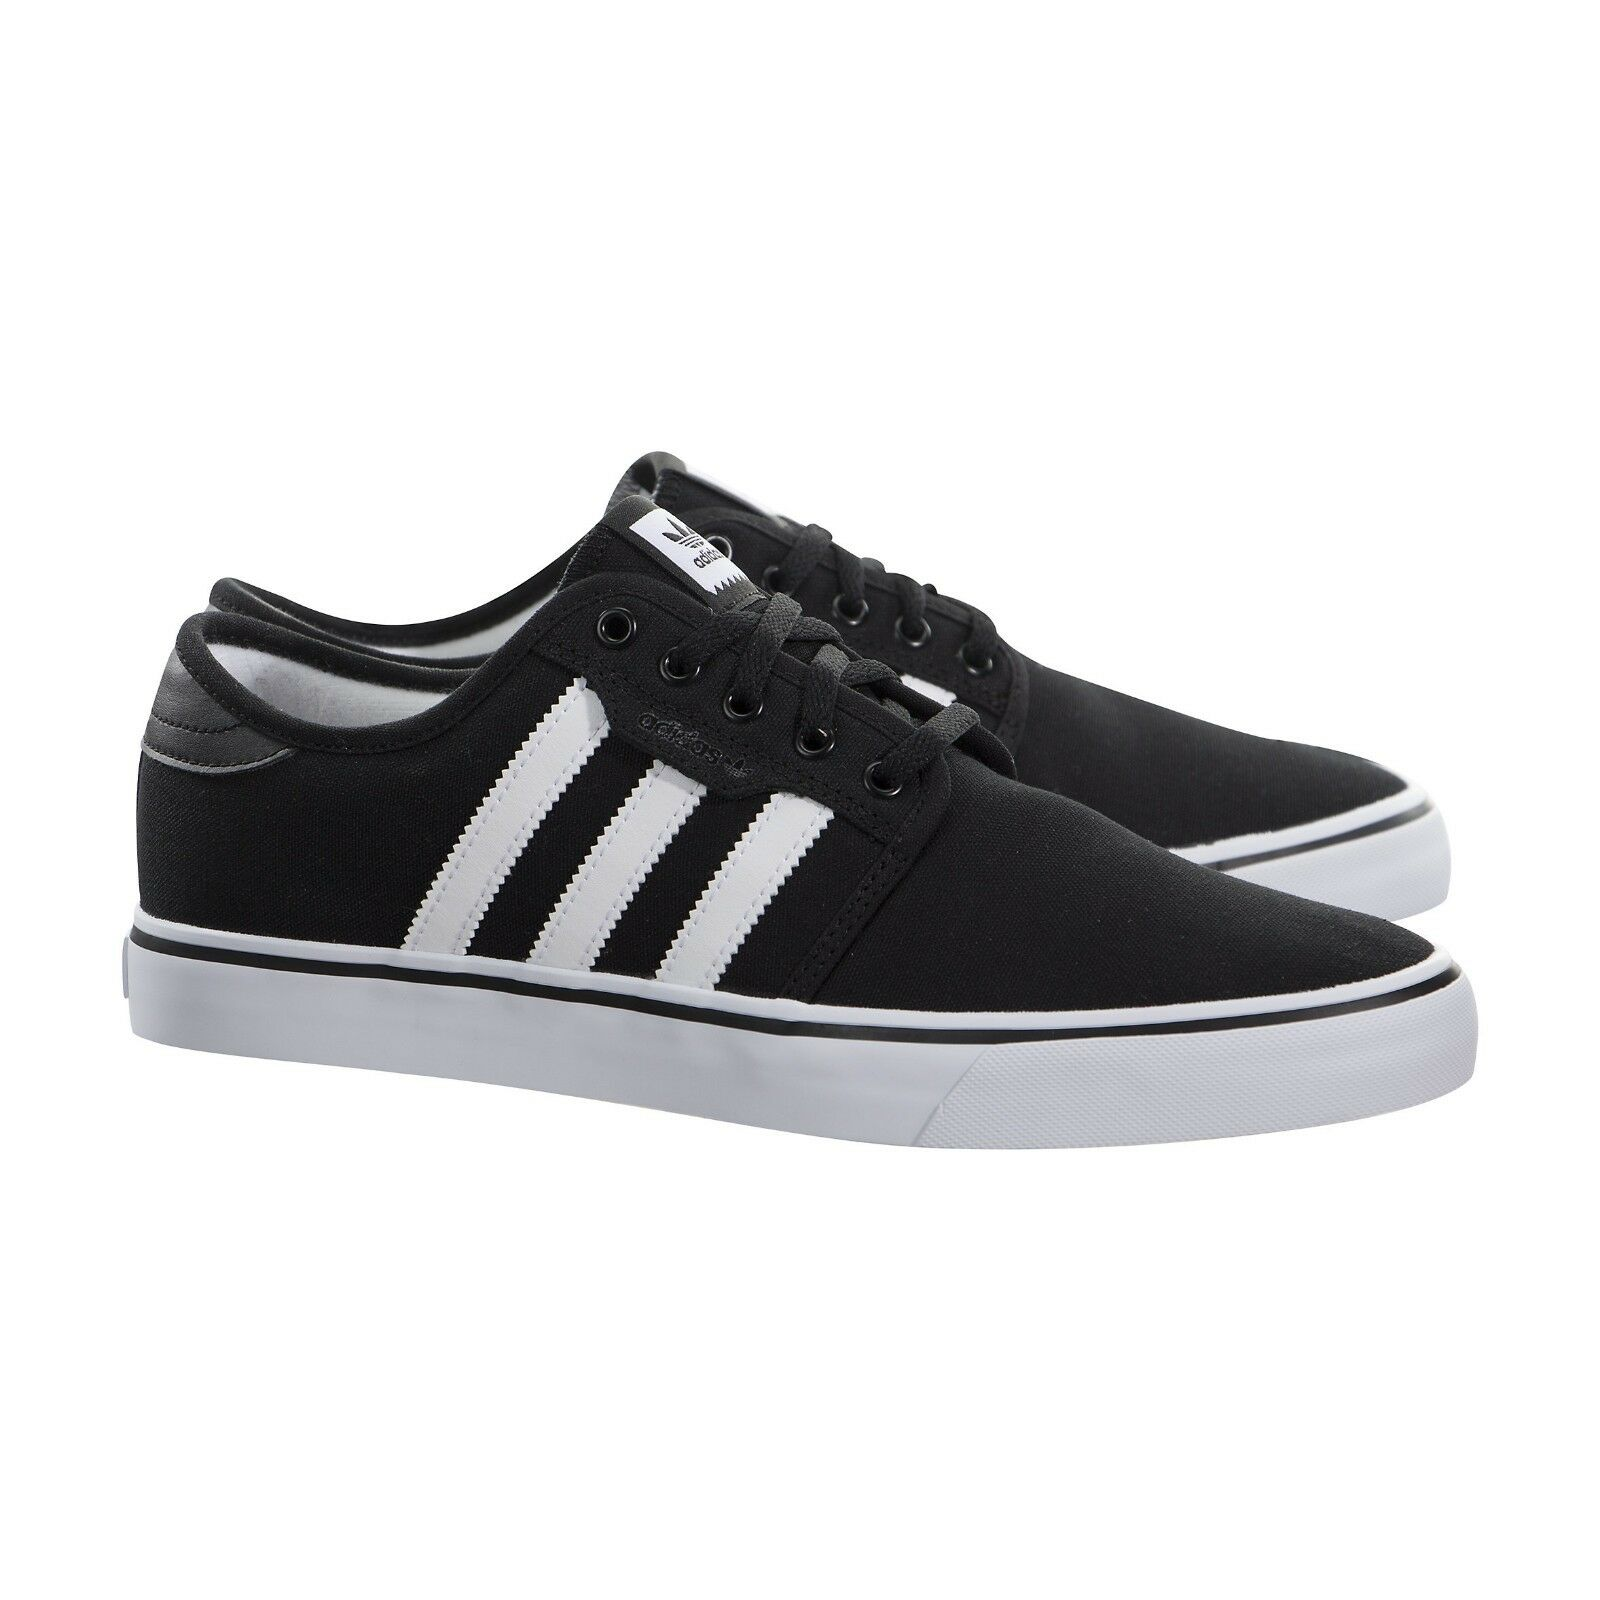 Adidas Seeley Black White Canvas Men's Size shoes New In Box